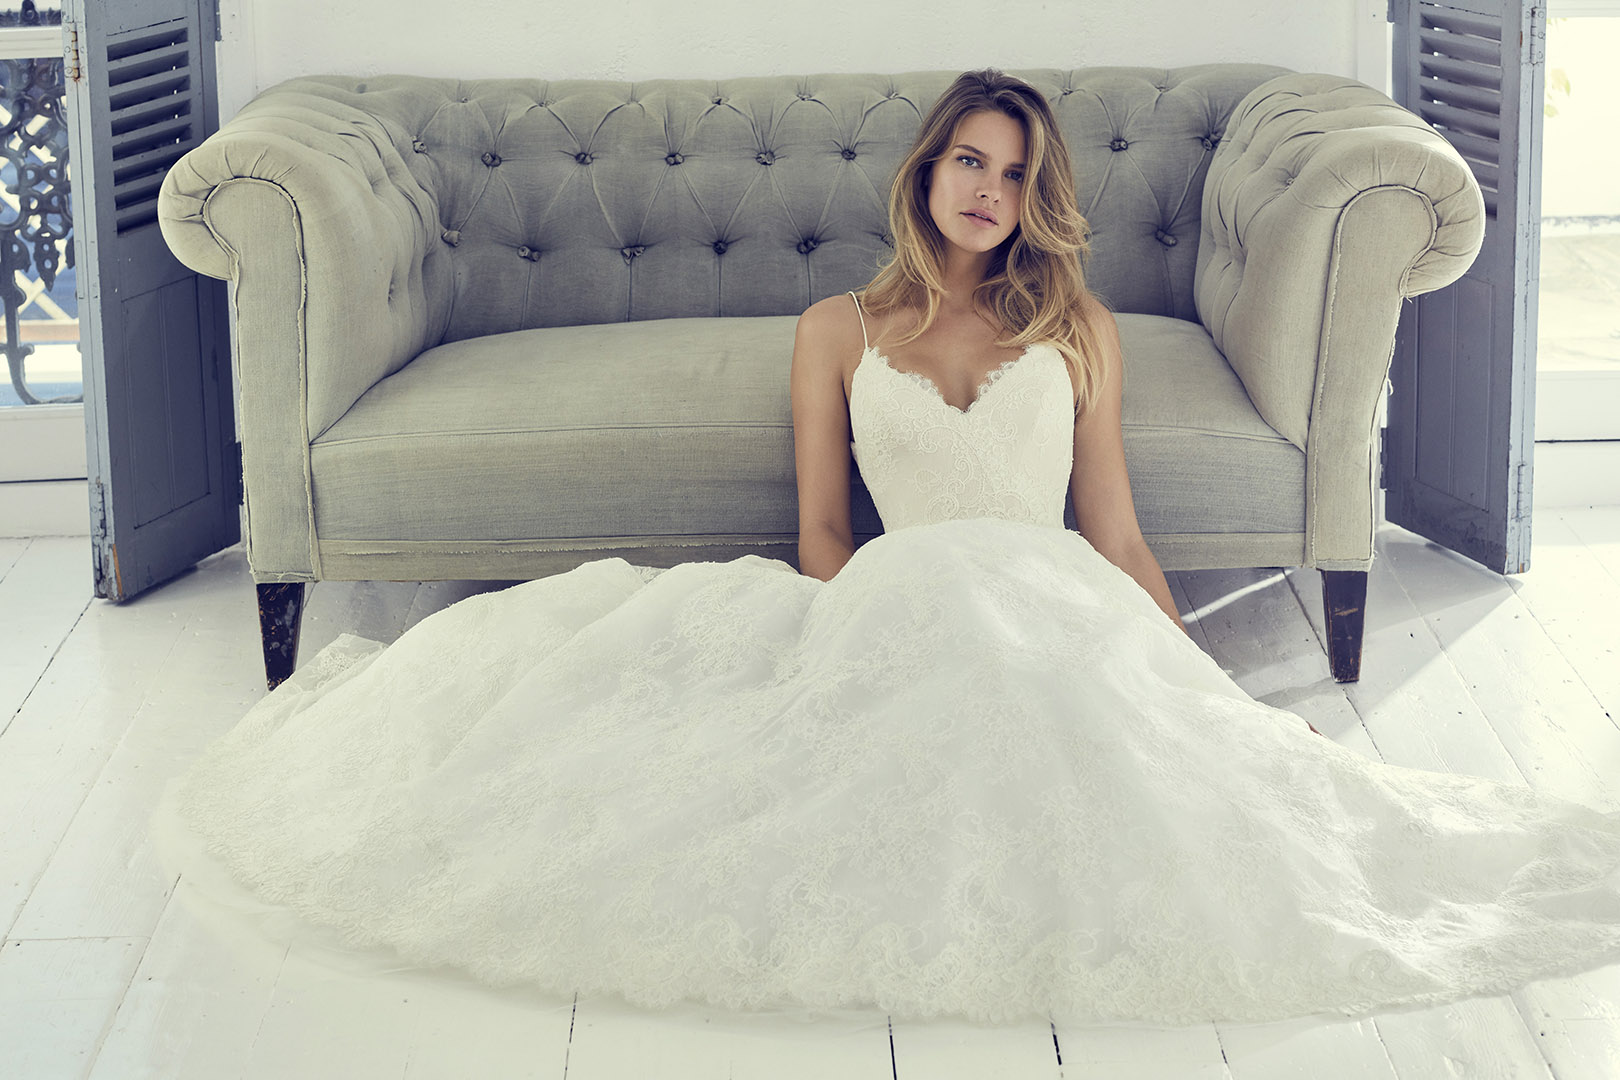 harlow1-wedding-dresses-uk-suzanne-neville-collection-hd-2019